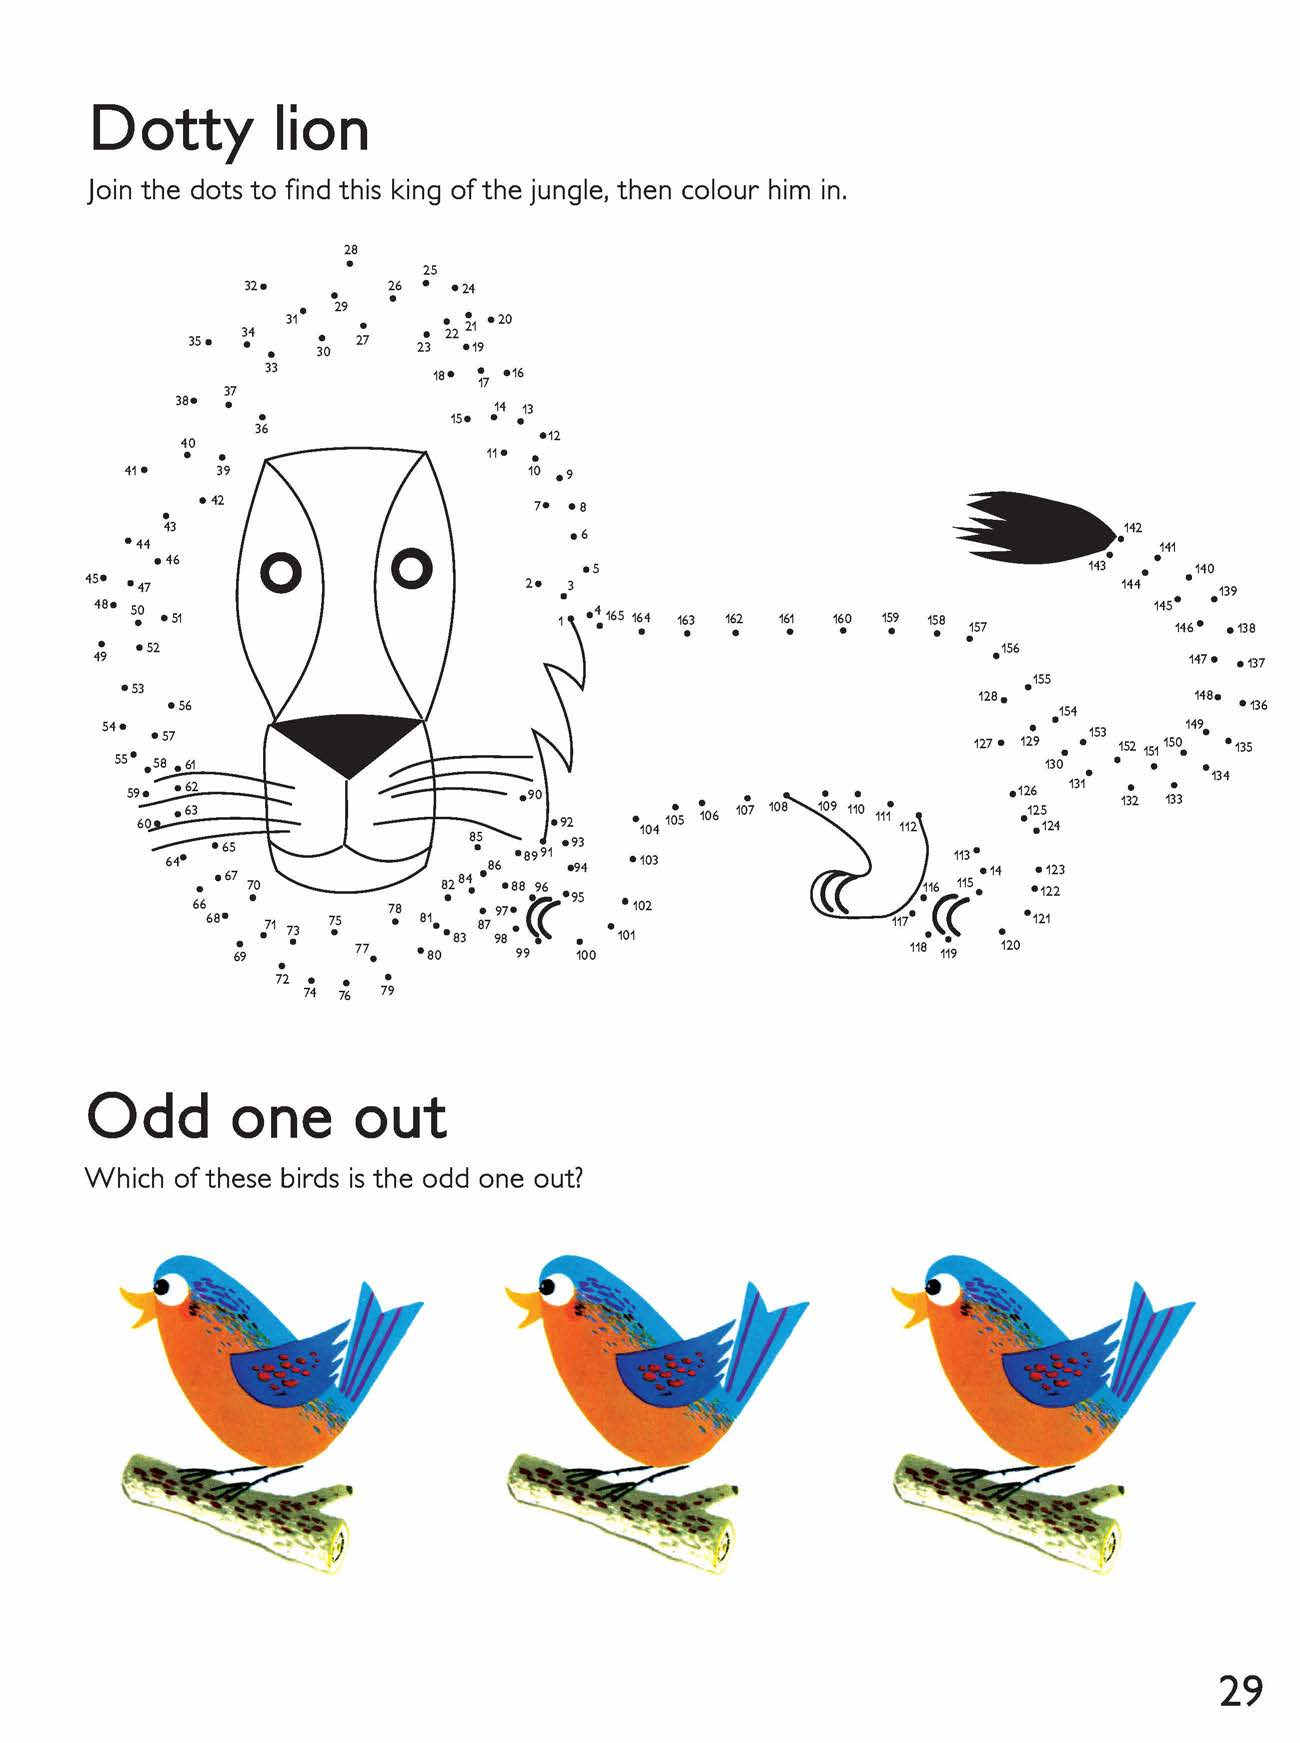 Dotty Lion and Odd One Out Activity Sheet  image